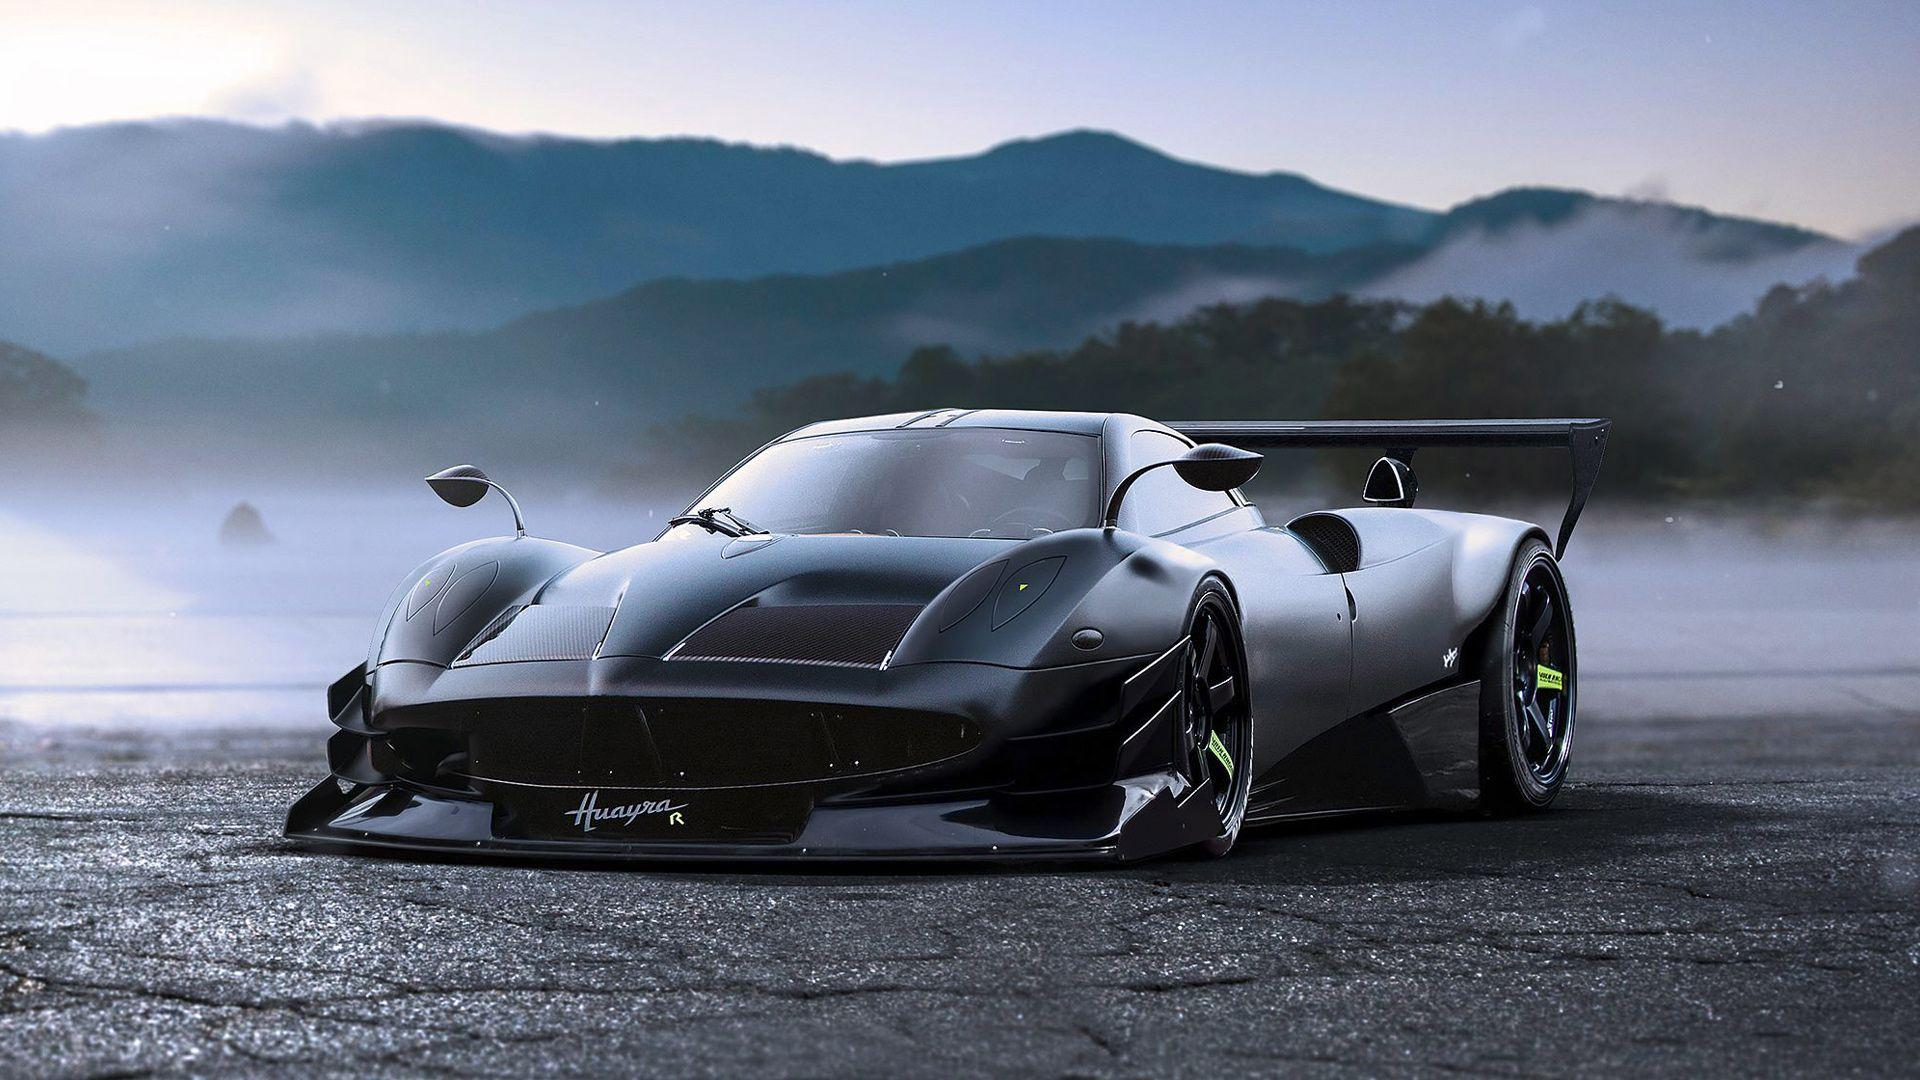 Pagani Huayra R Concept Wallpapers